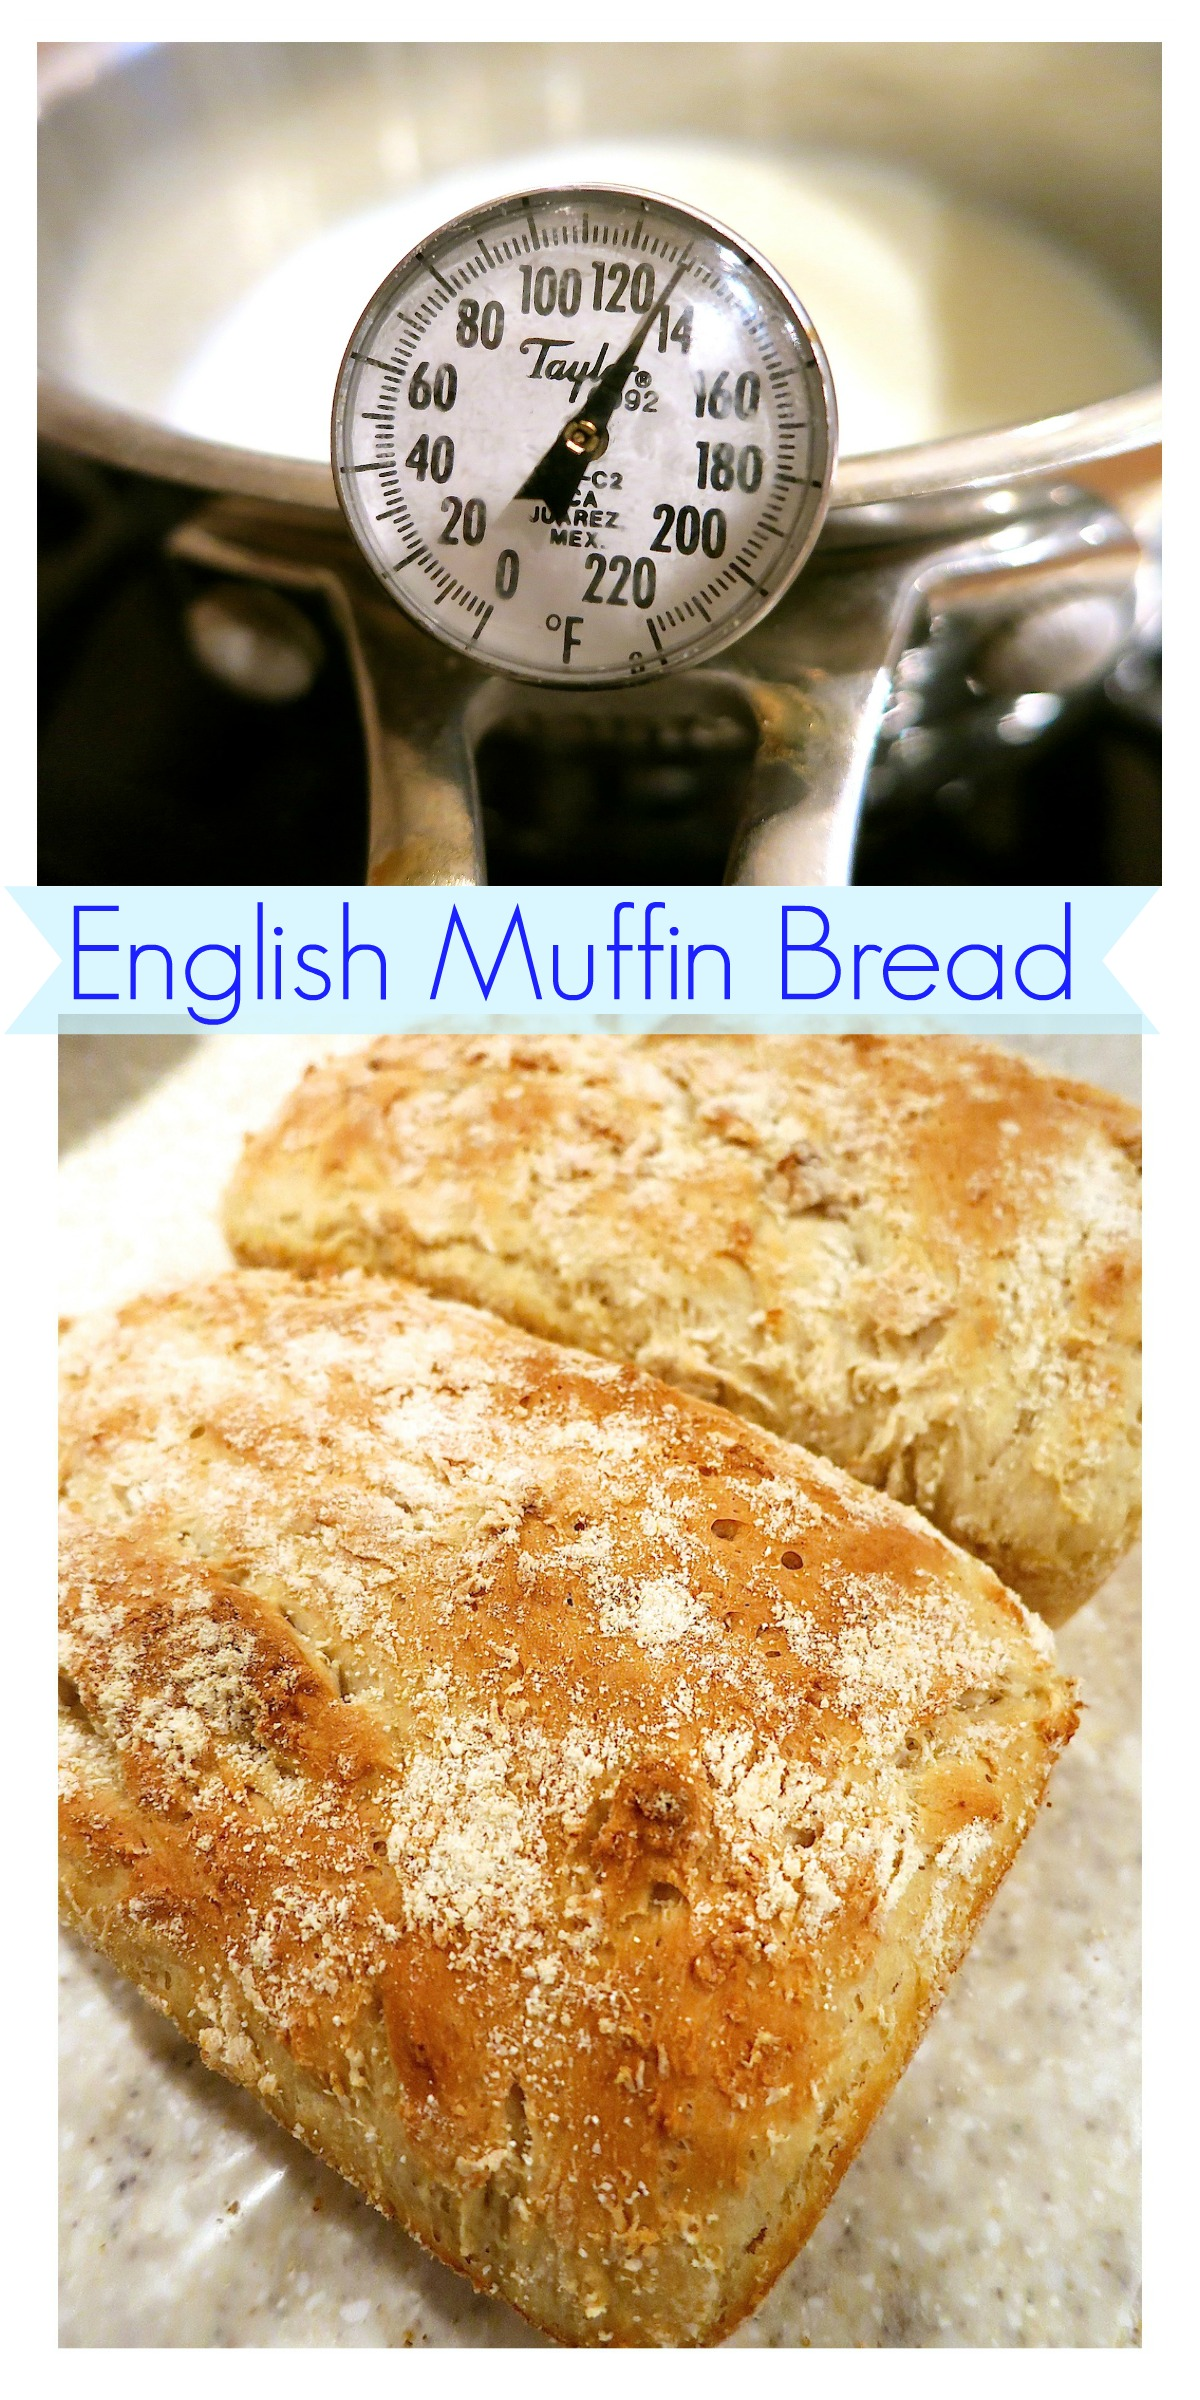 English Muffin Bread Collage